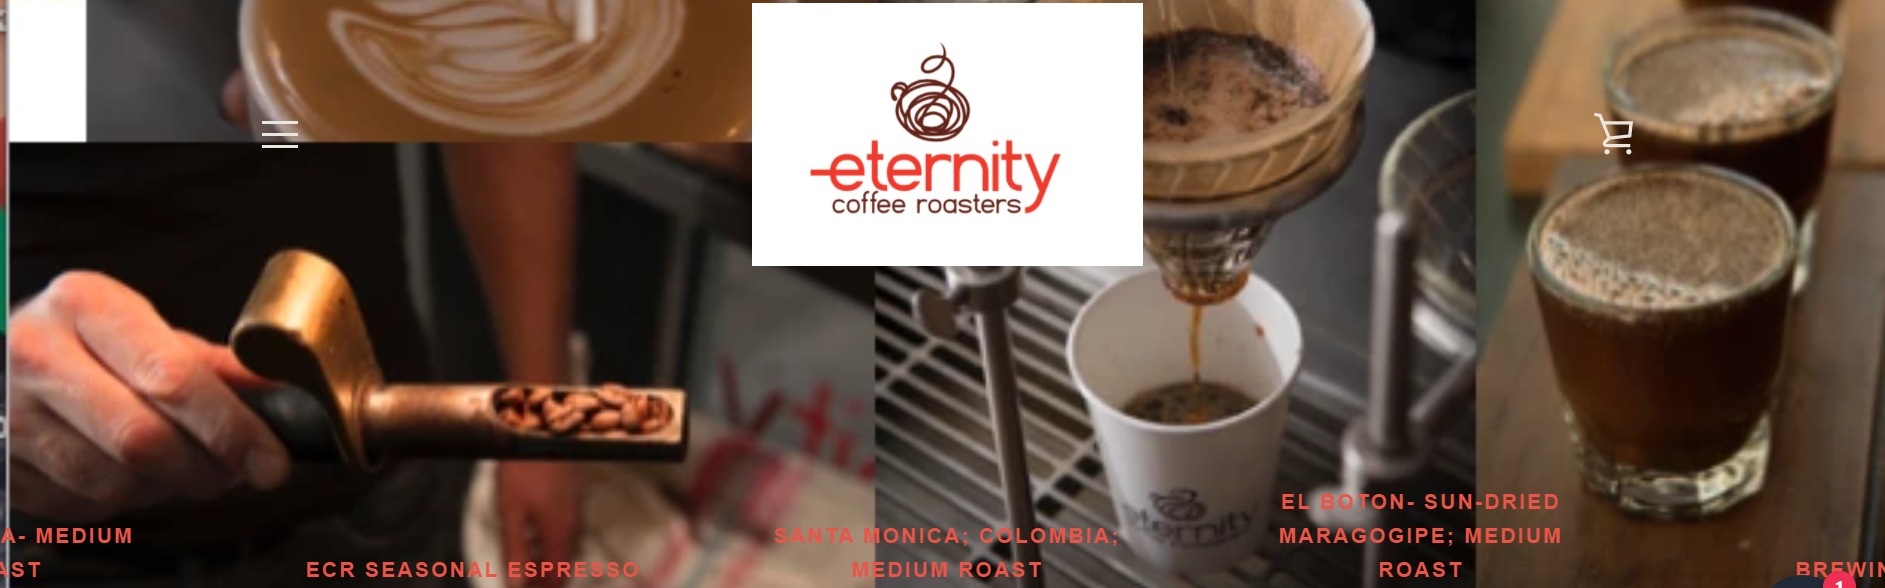 Eternity Coffee Roasters Cafe in Miami